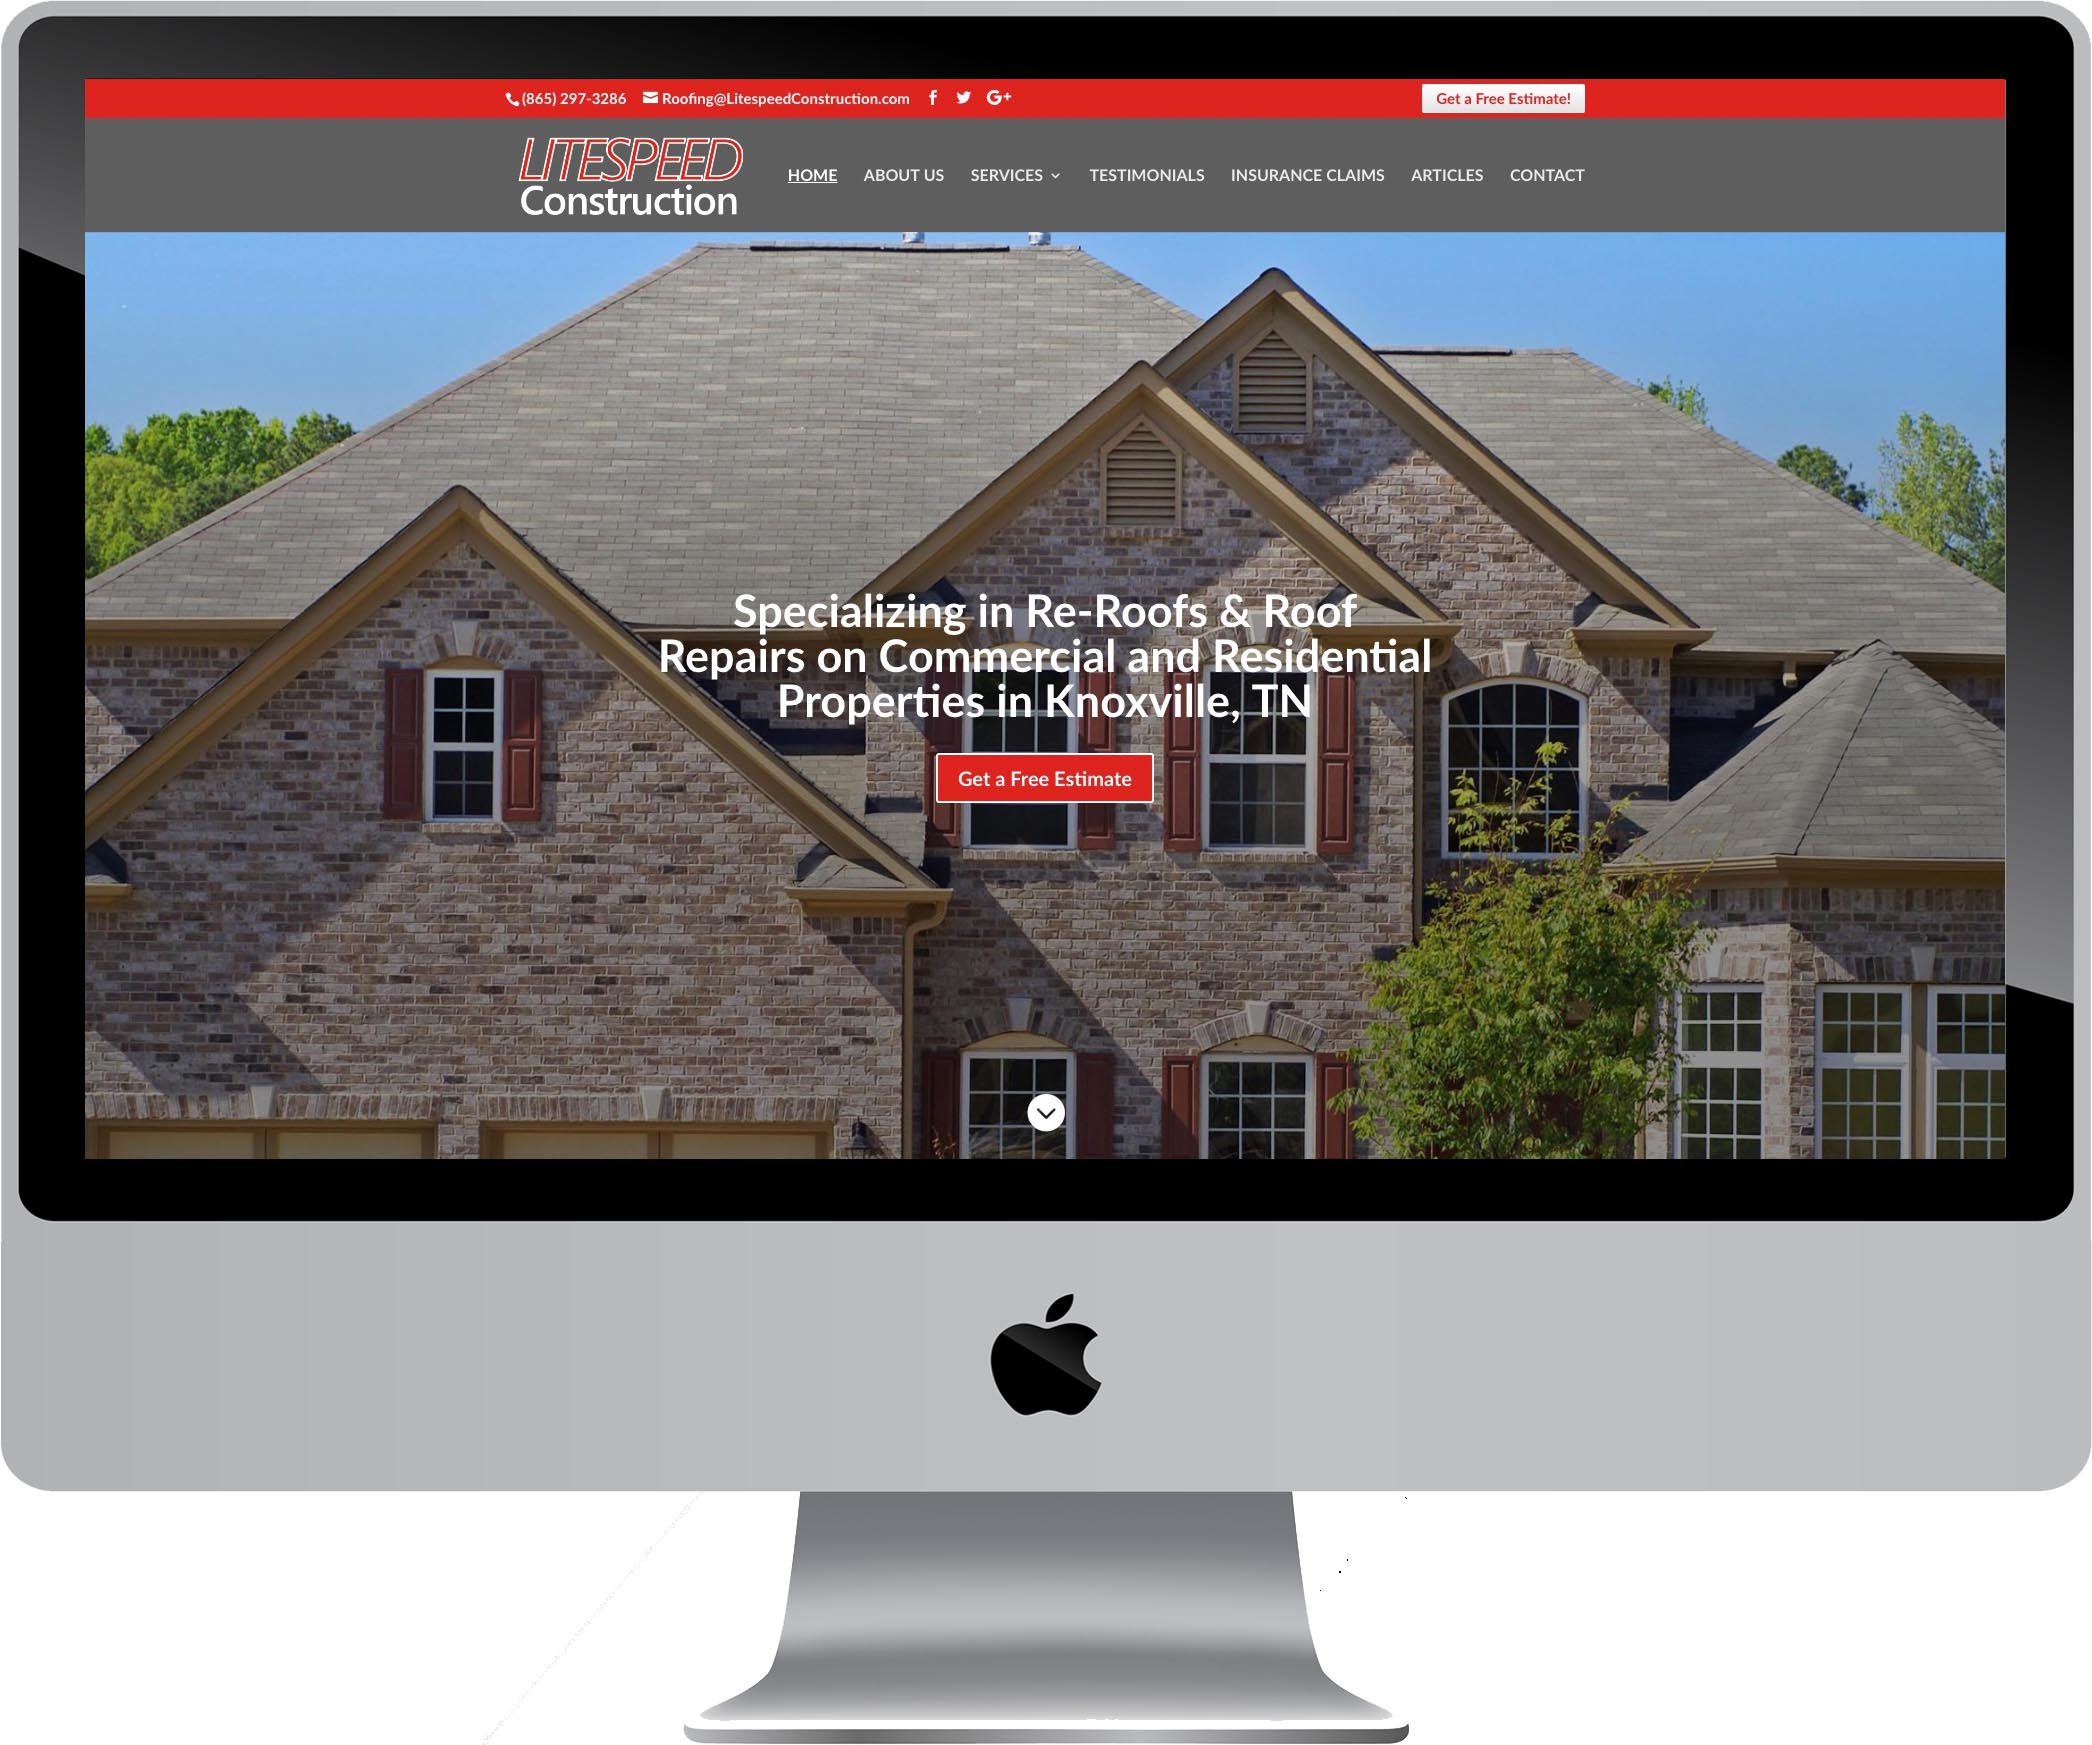 Litespeed Construction Website Design